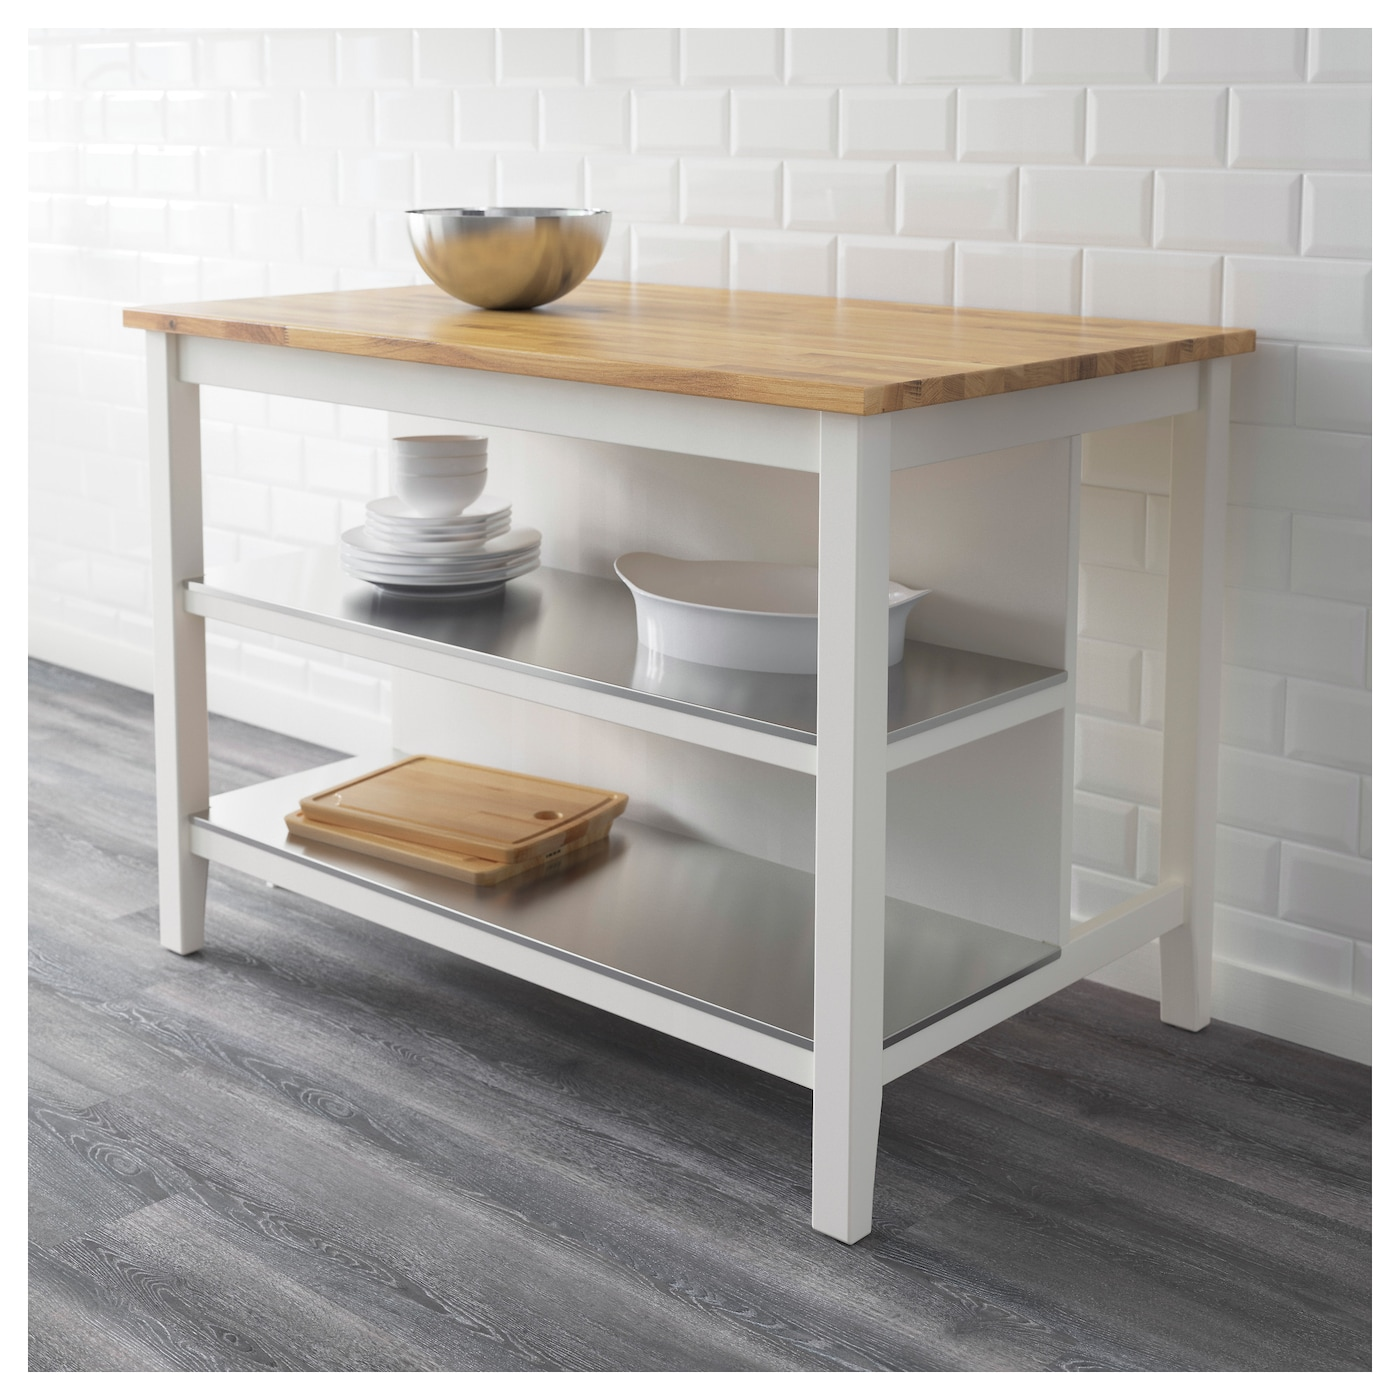 IKEA STENSTORP Kitchen Island Design Inspirations